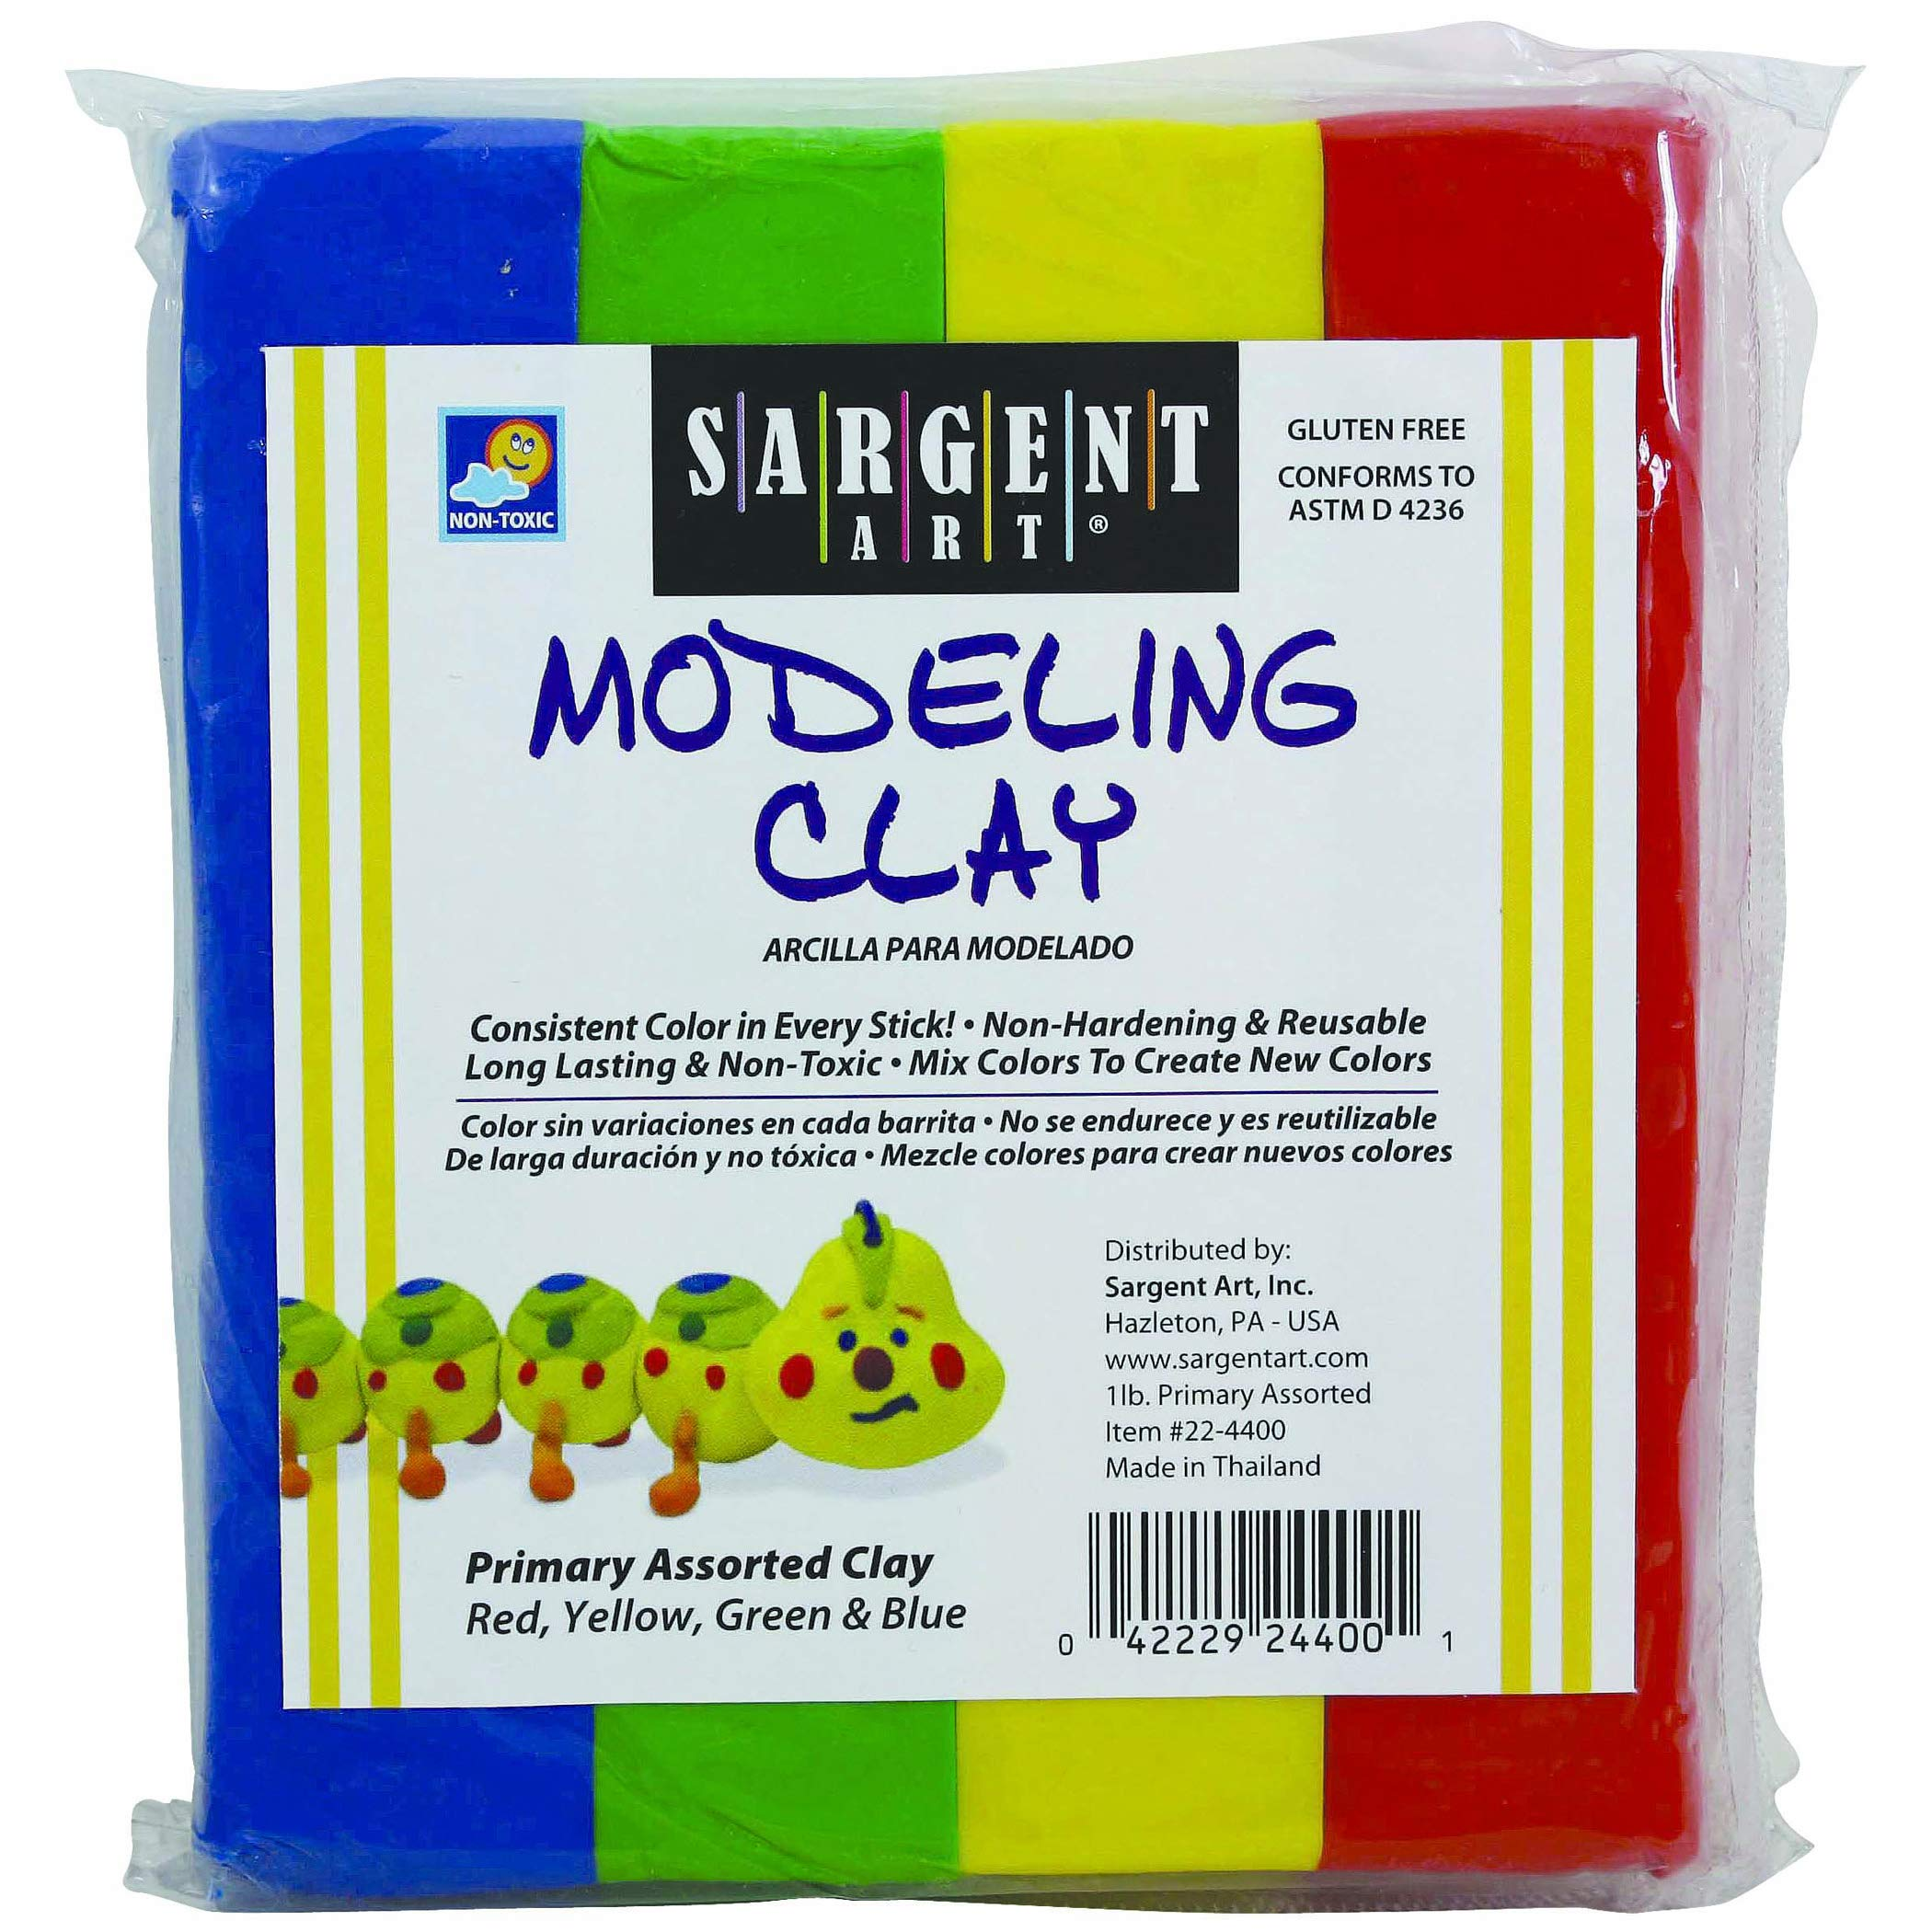 Sargent Art SAR224400BN Modeling Clay, Blue/Green/Yellow/Red, 1 lb. Per Pack, 12 Packs